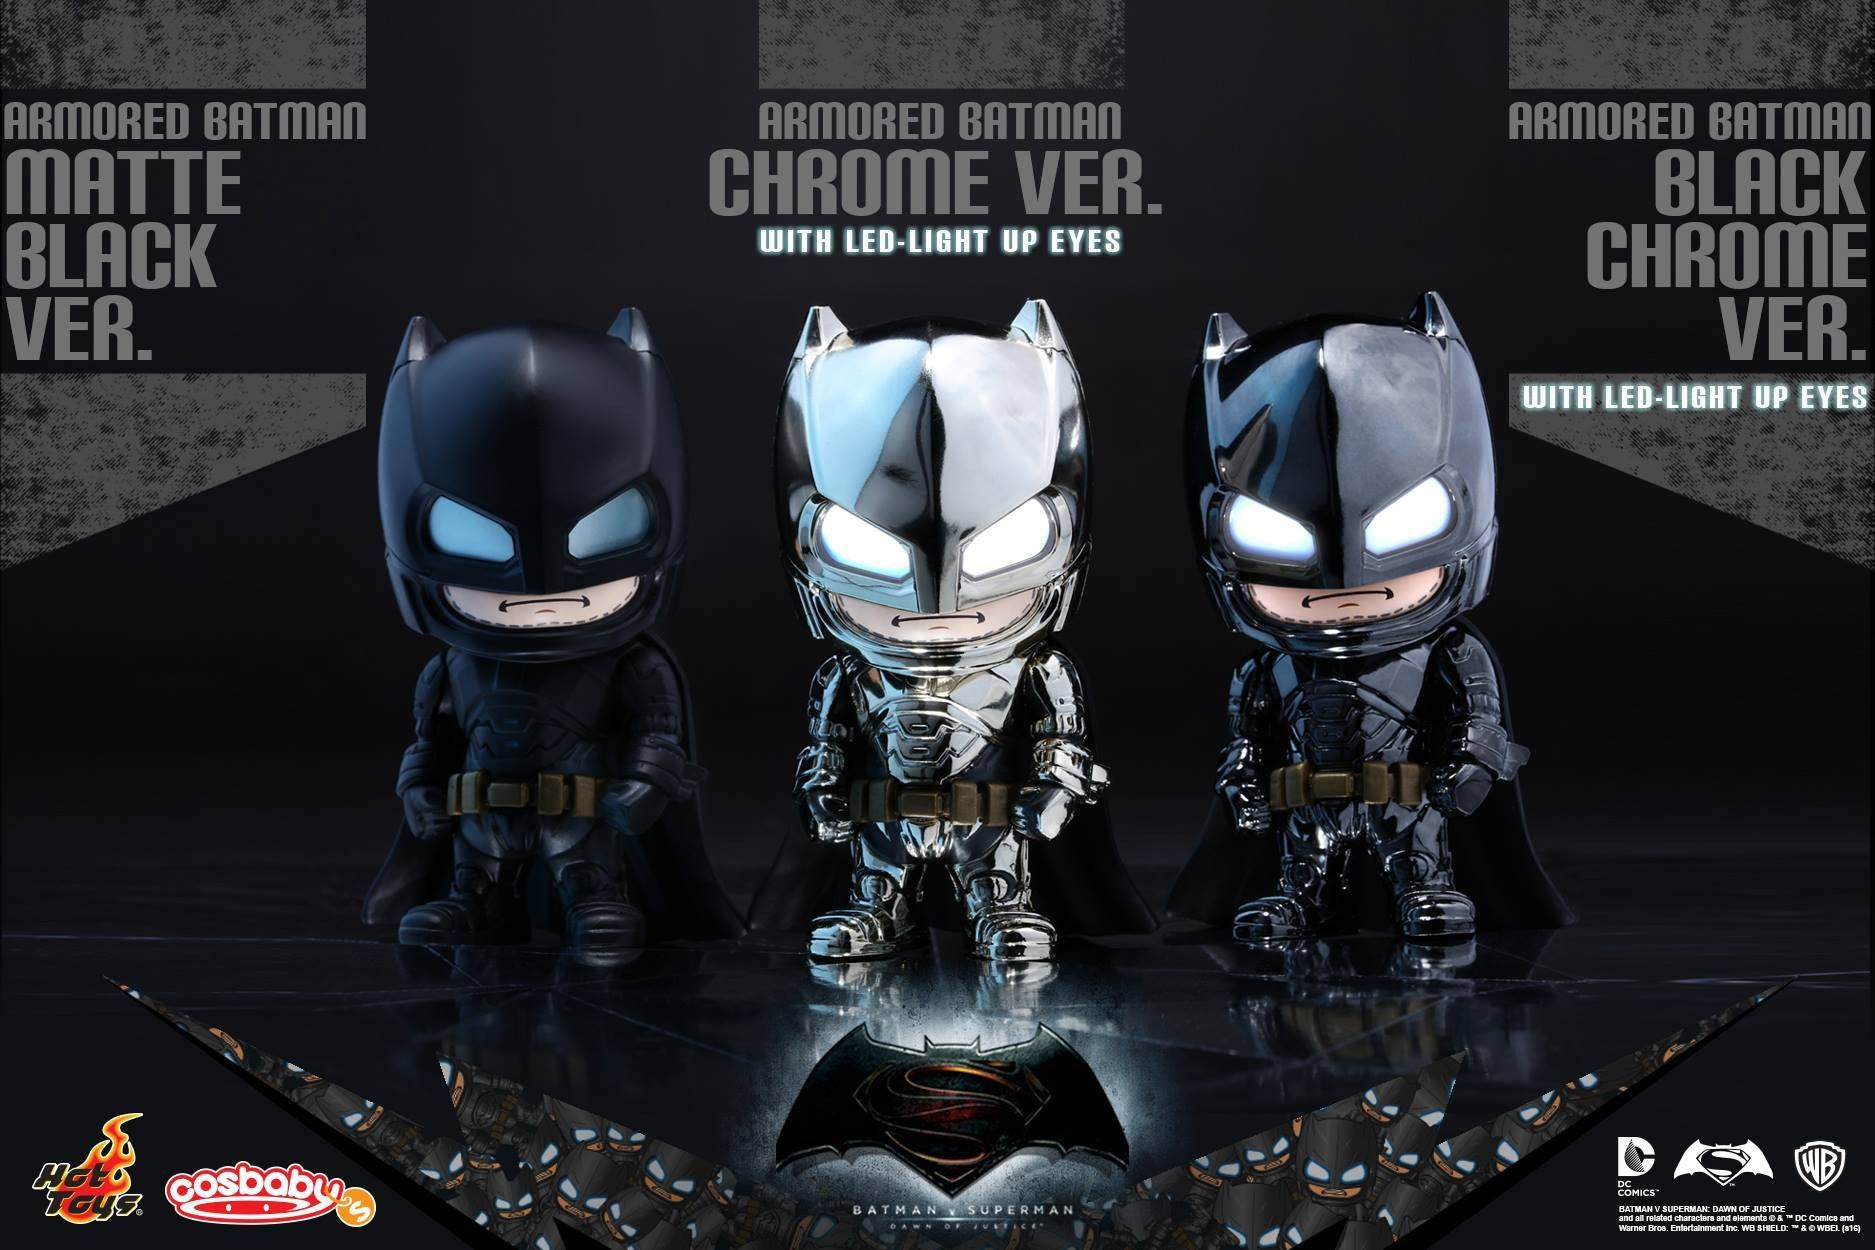 Hot Toys - COSB229-231 - Batman v Superman: Dawn of Justice - Armored Batman (Special Color Versions) Cosbaby (S) Bundle Set - Marvelous Toys - 1